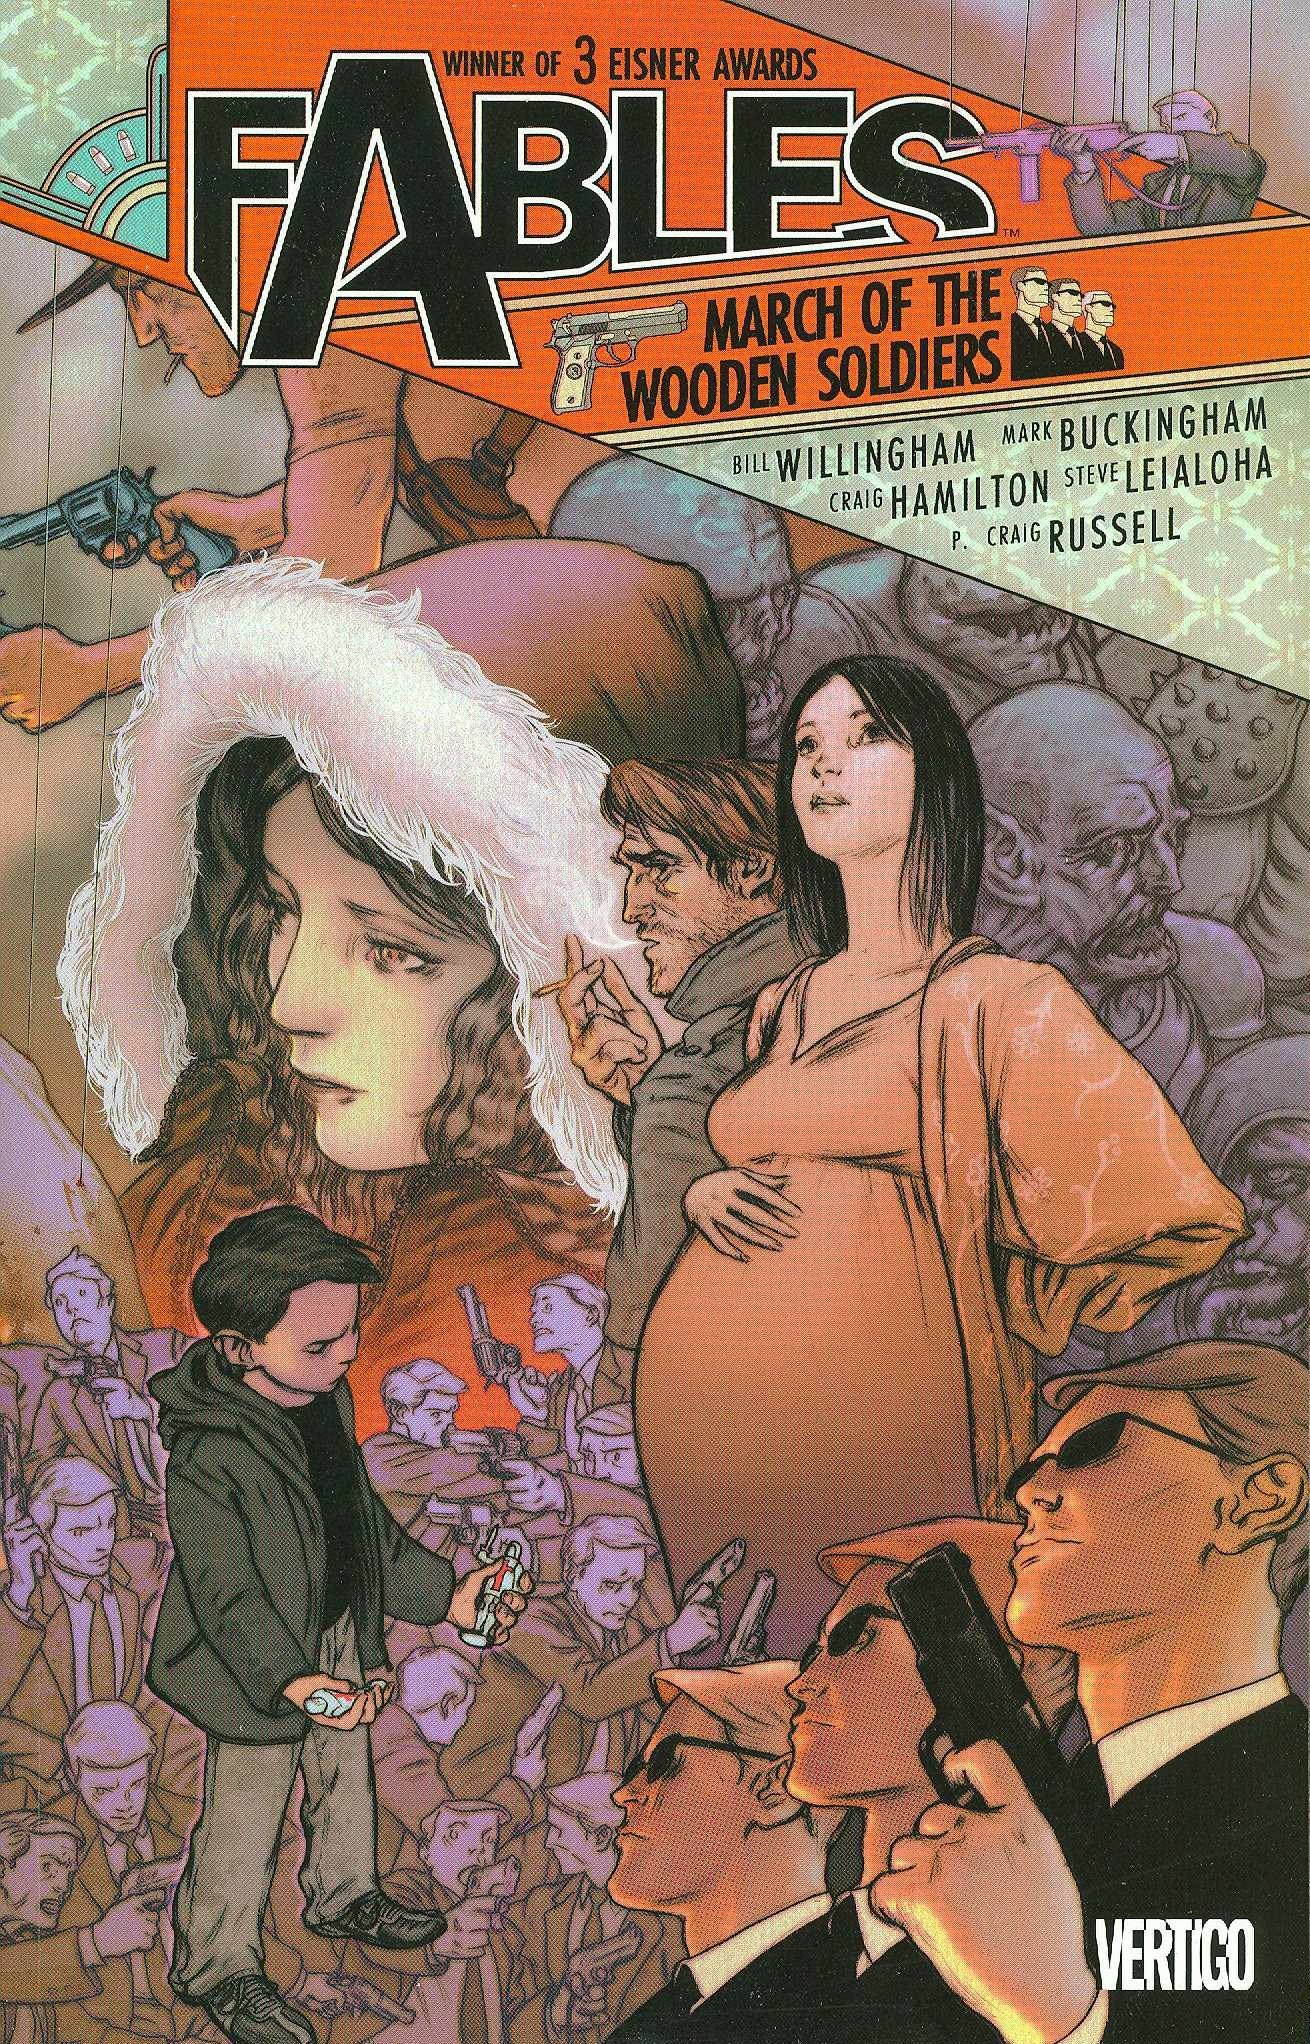 FABLES TP VOL 4 MARCH OF THE WOODEN SOLDIERS